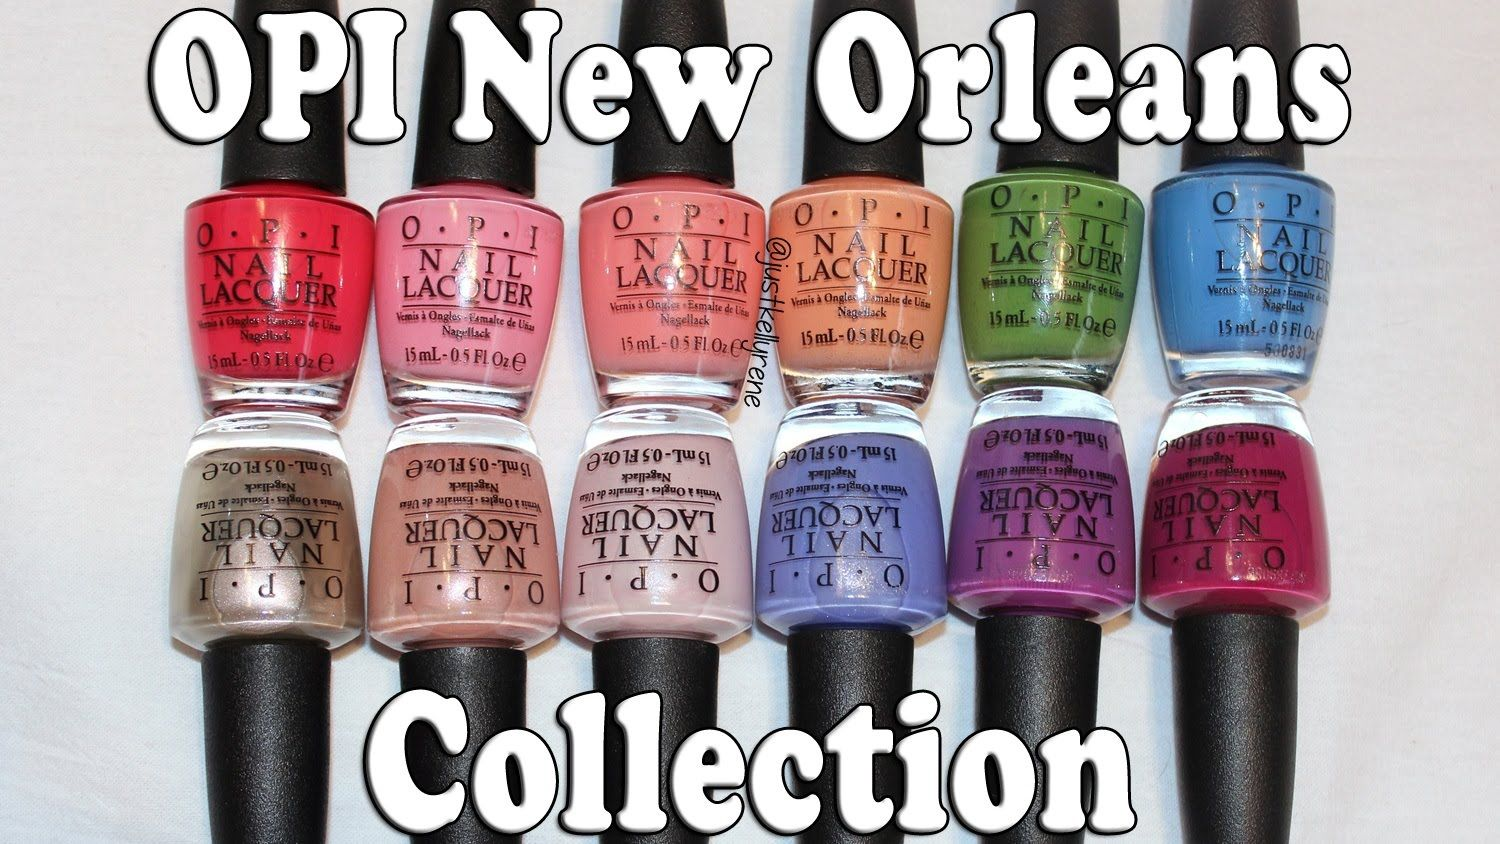 OPI New Orleans Collection swatches ♥justkellyrene Opi